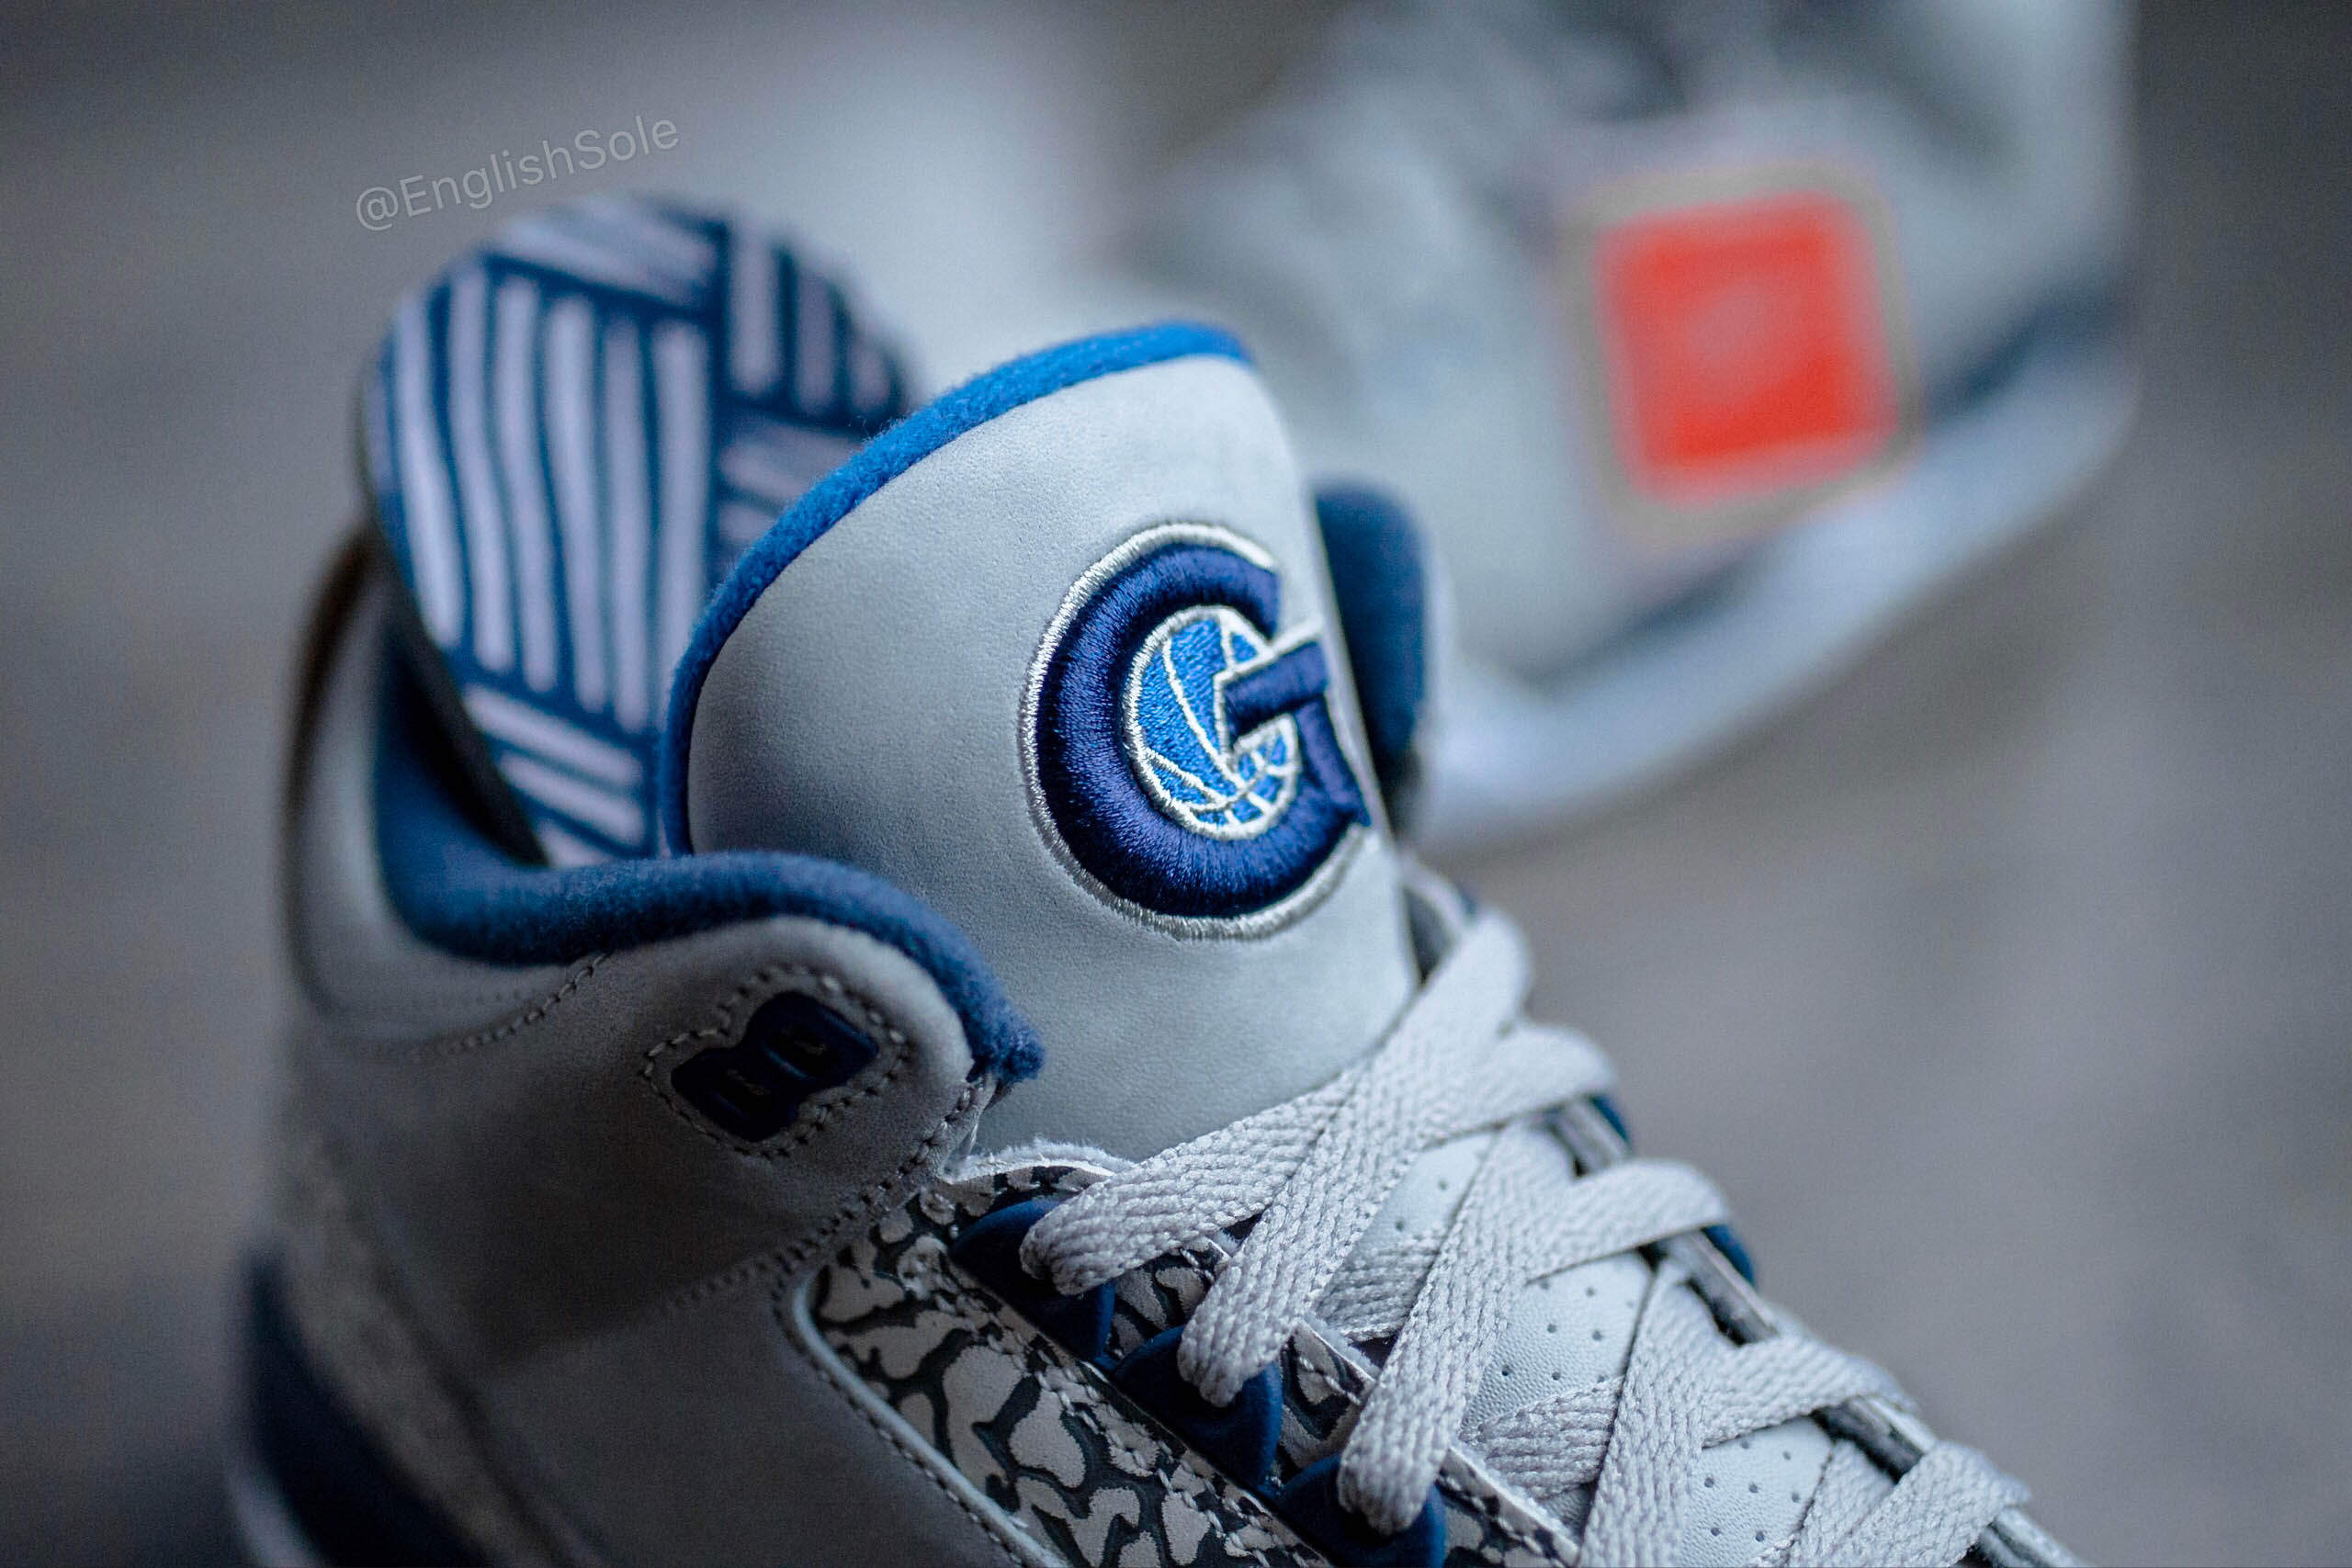 A detailed look at the rare Georgetown and UNC Air Jordan 3 PEs